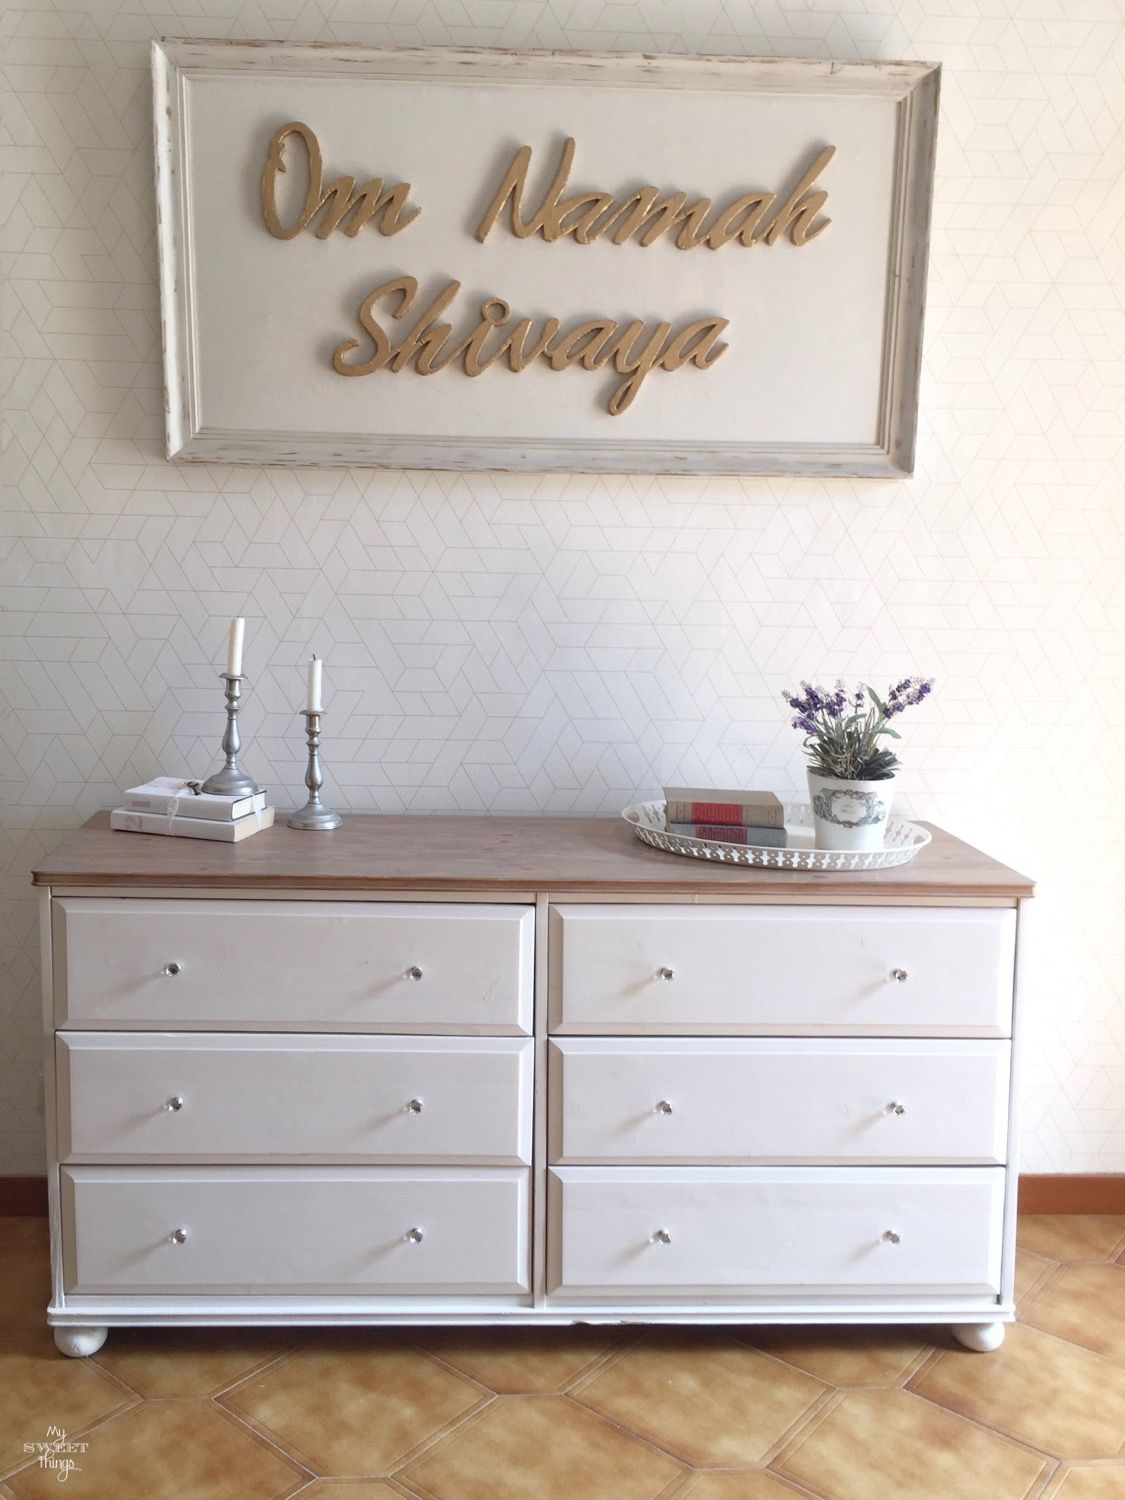 Two toned sideboard makeover · Walnut and off white · Via www.sweethings.net #two-tone #dresser #sideboard #makeover #furniture